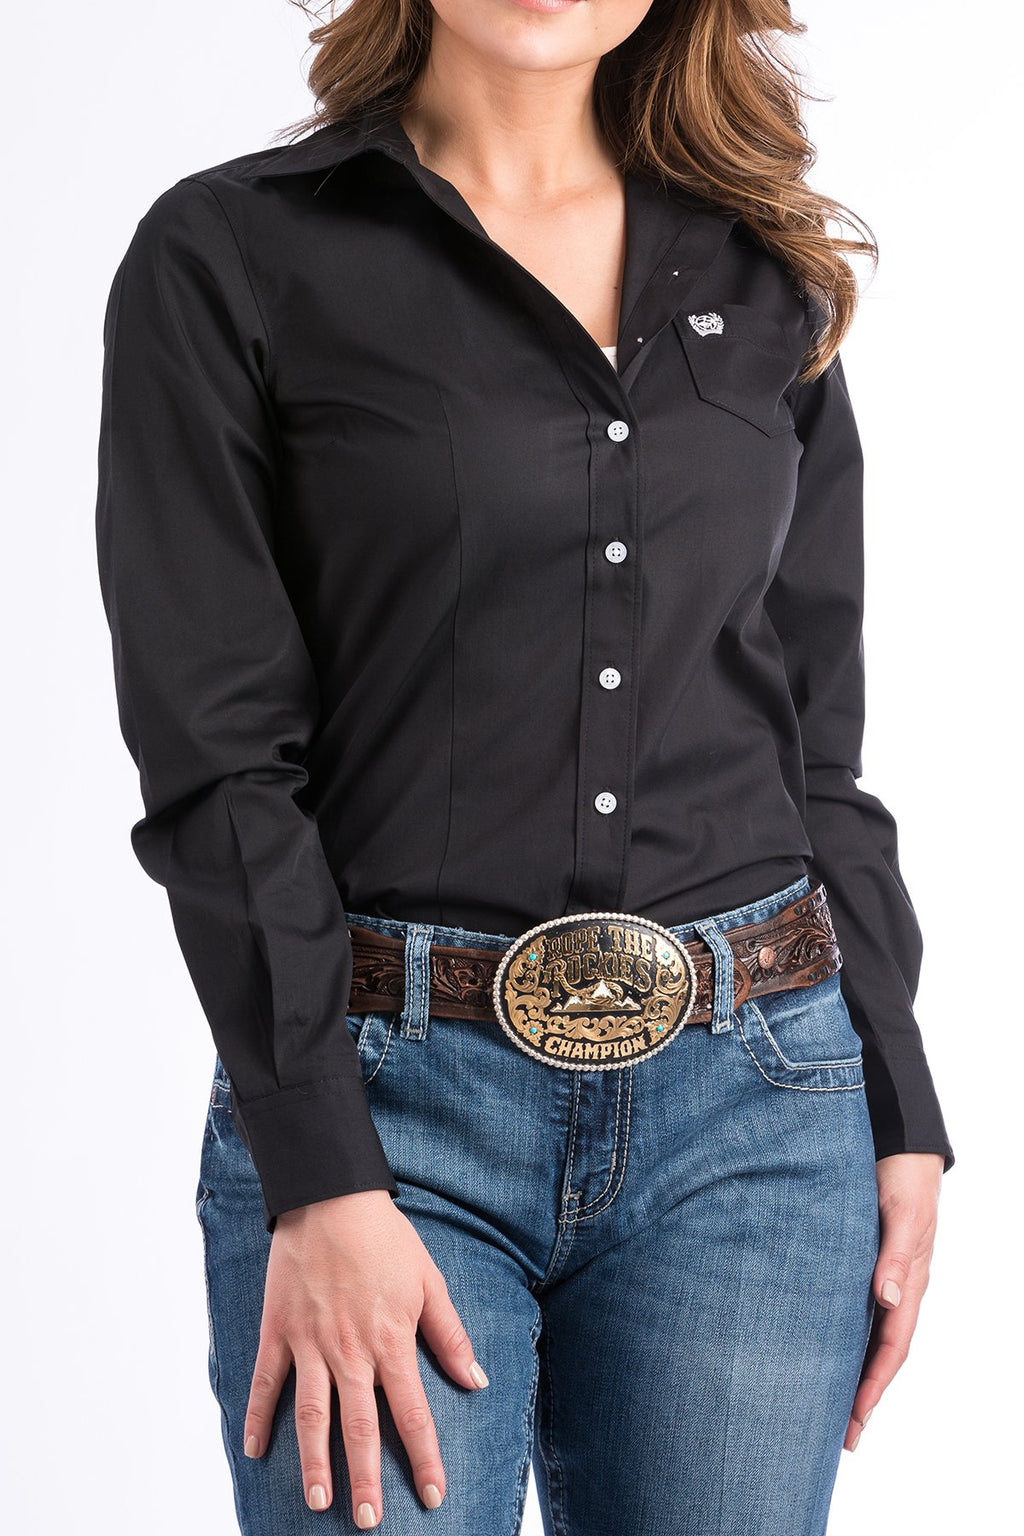 Women's Cinch Solid Black Western Shirt